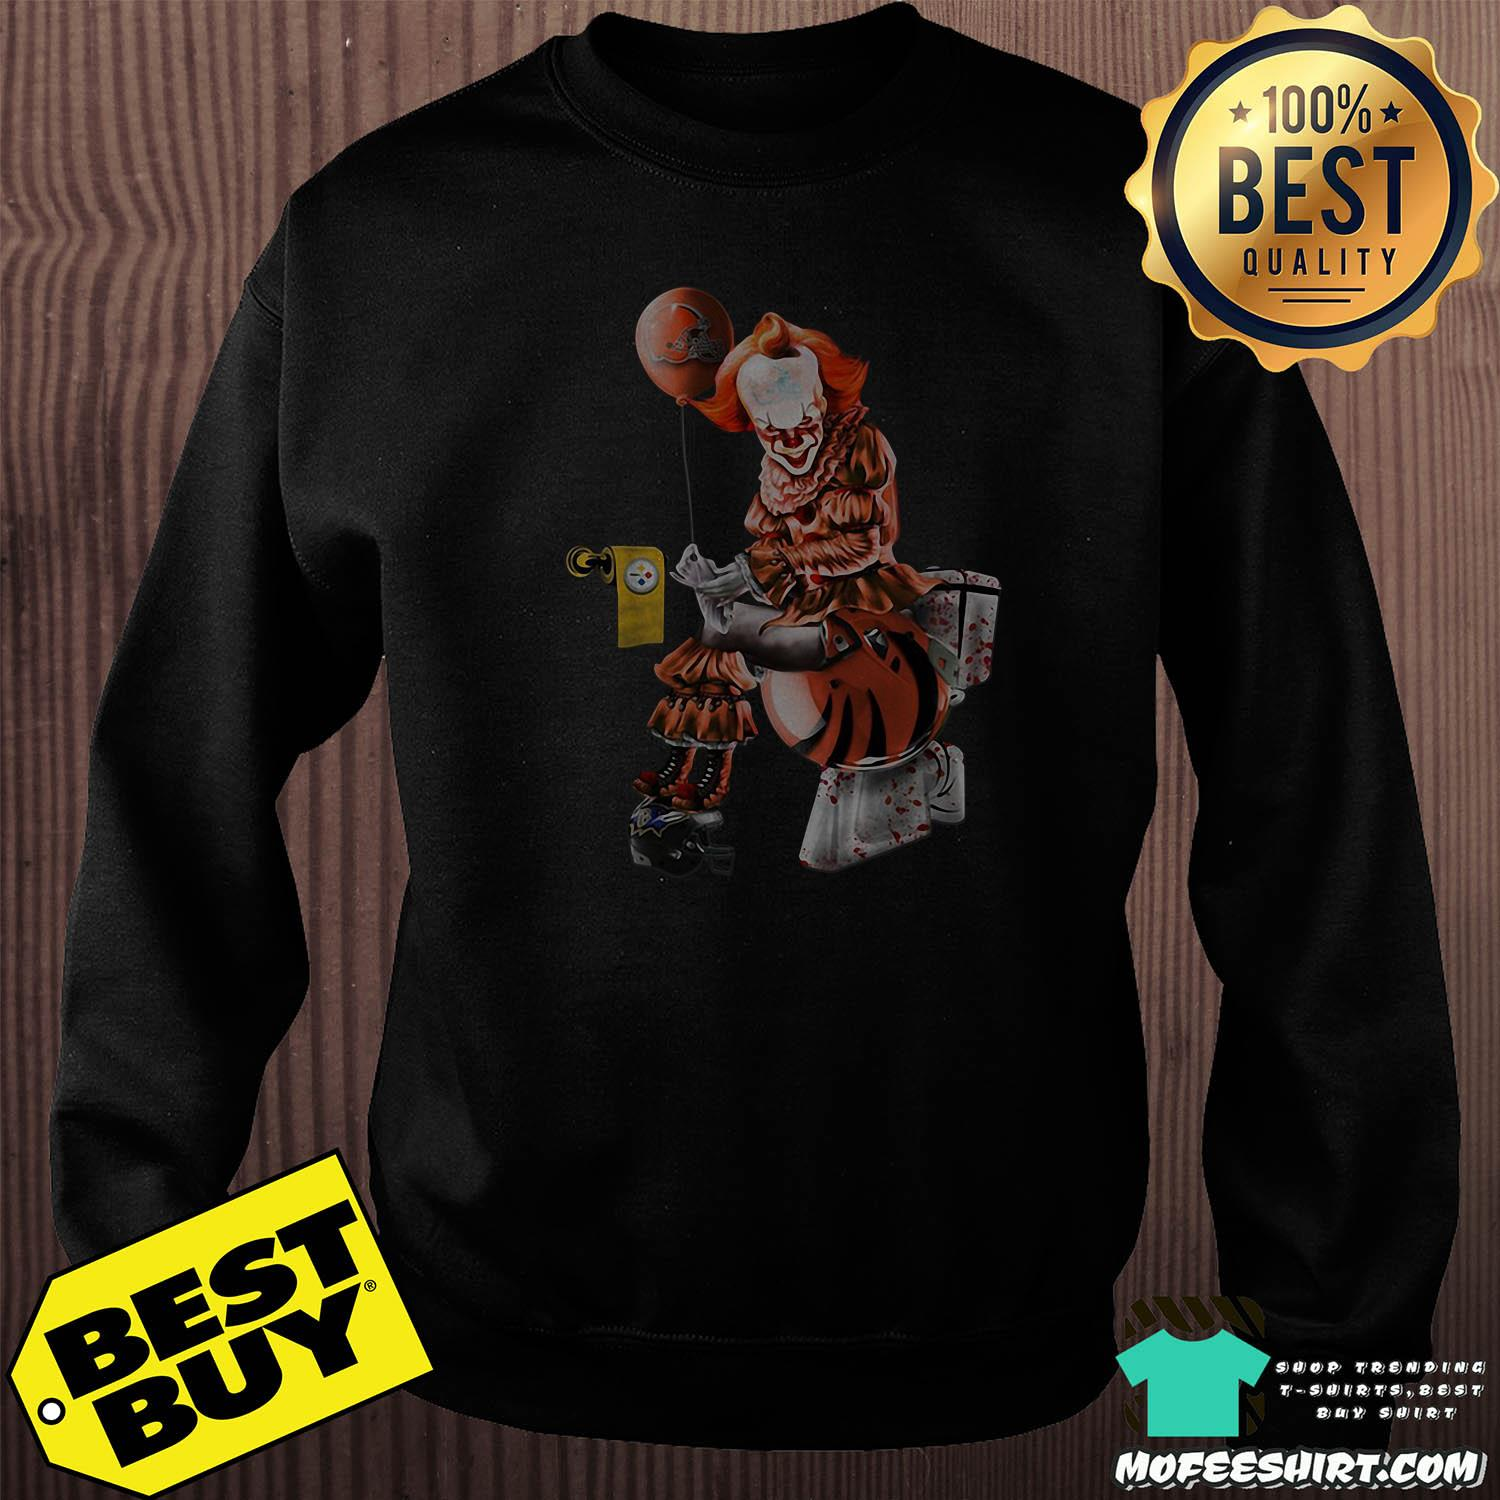 pennywise pittsburgh steelers cleveland browns baltimore ravens toilet sweatshirt - Pennywise Pittsburgh Steelers Cleveland Browns Baltimore Ravens Toilet shirt